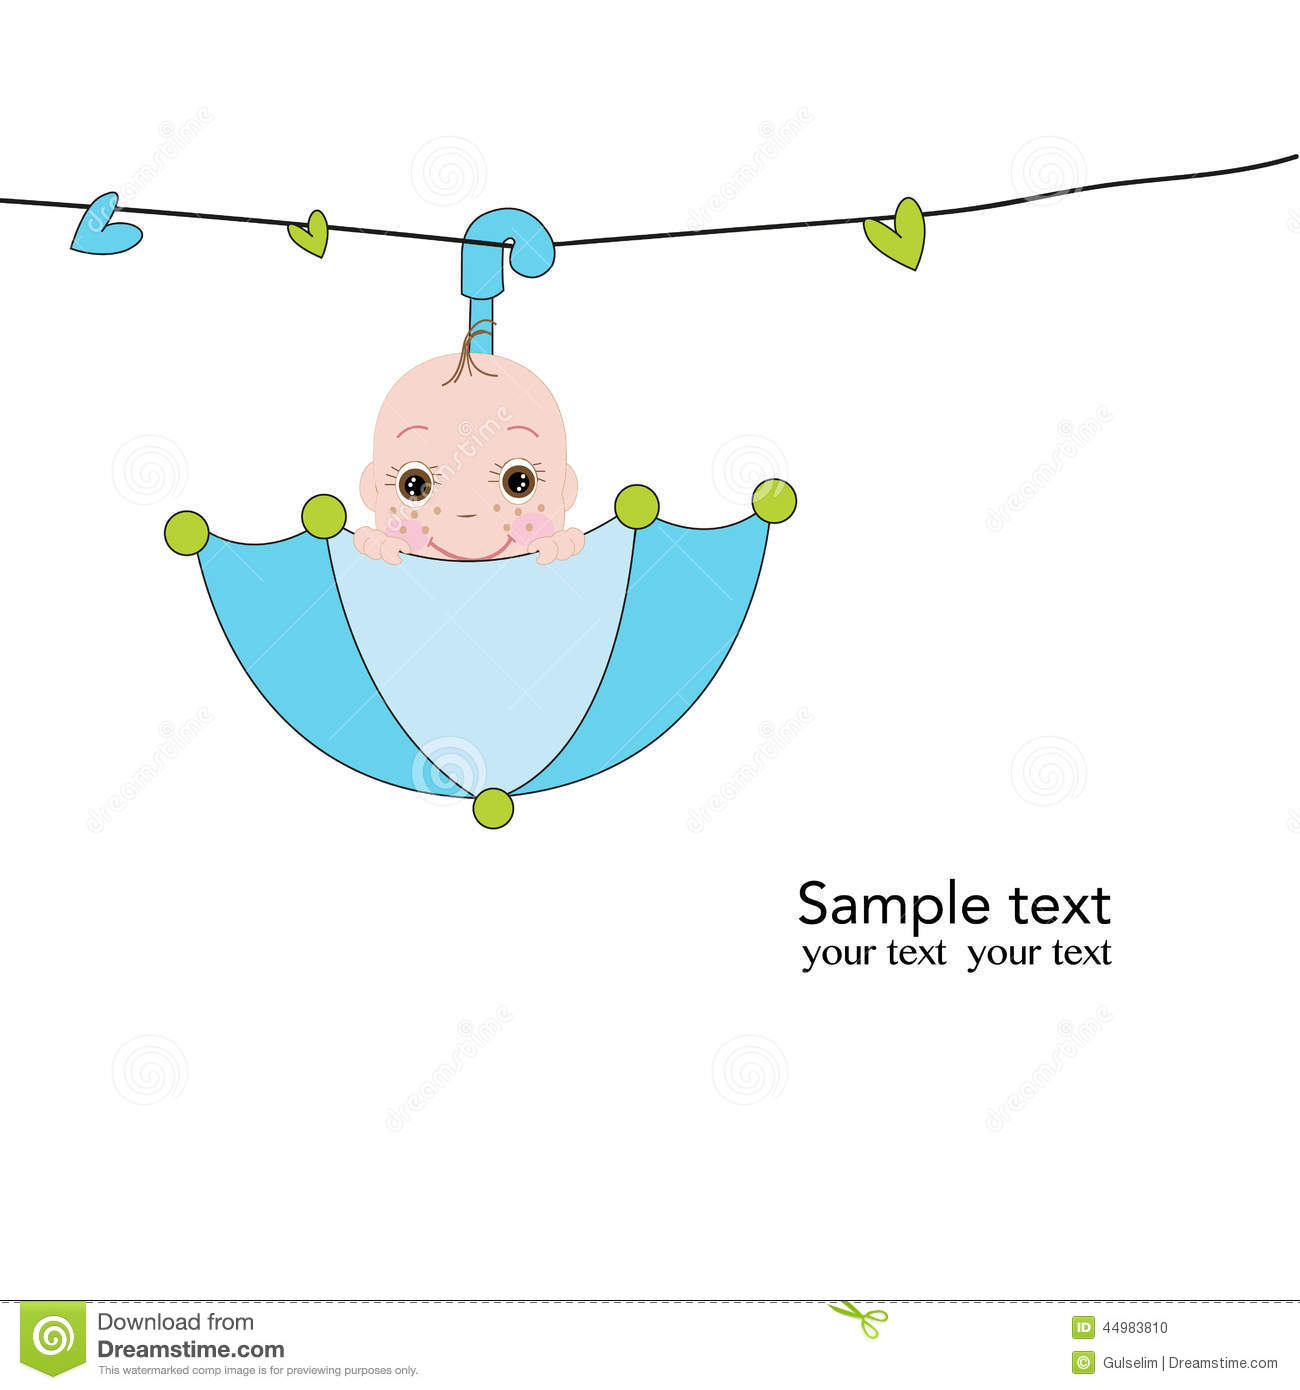 Coloring pages baby boy baby shower coloring pages boy baby shower - Newborn Baby With Umbrella Greeting Card Stock Vector